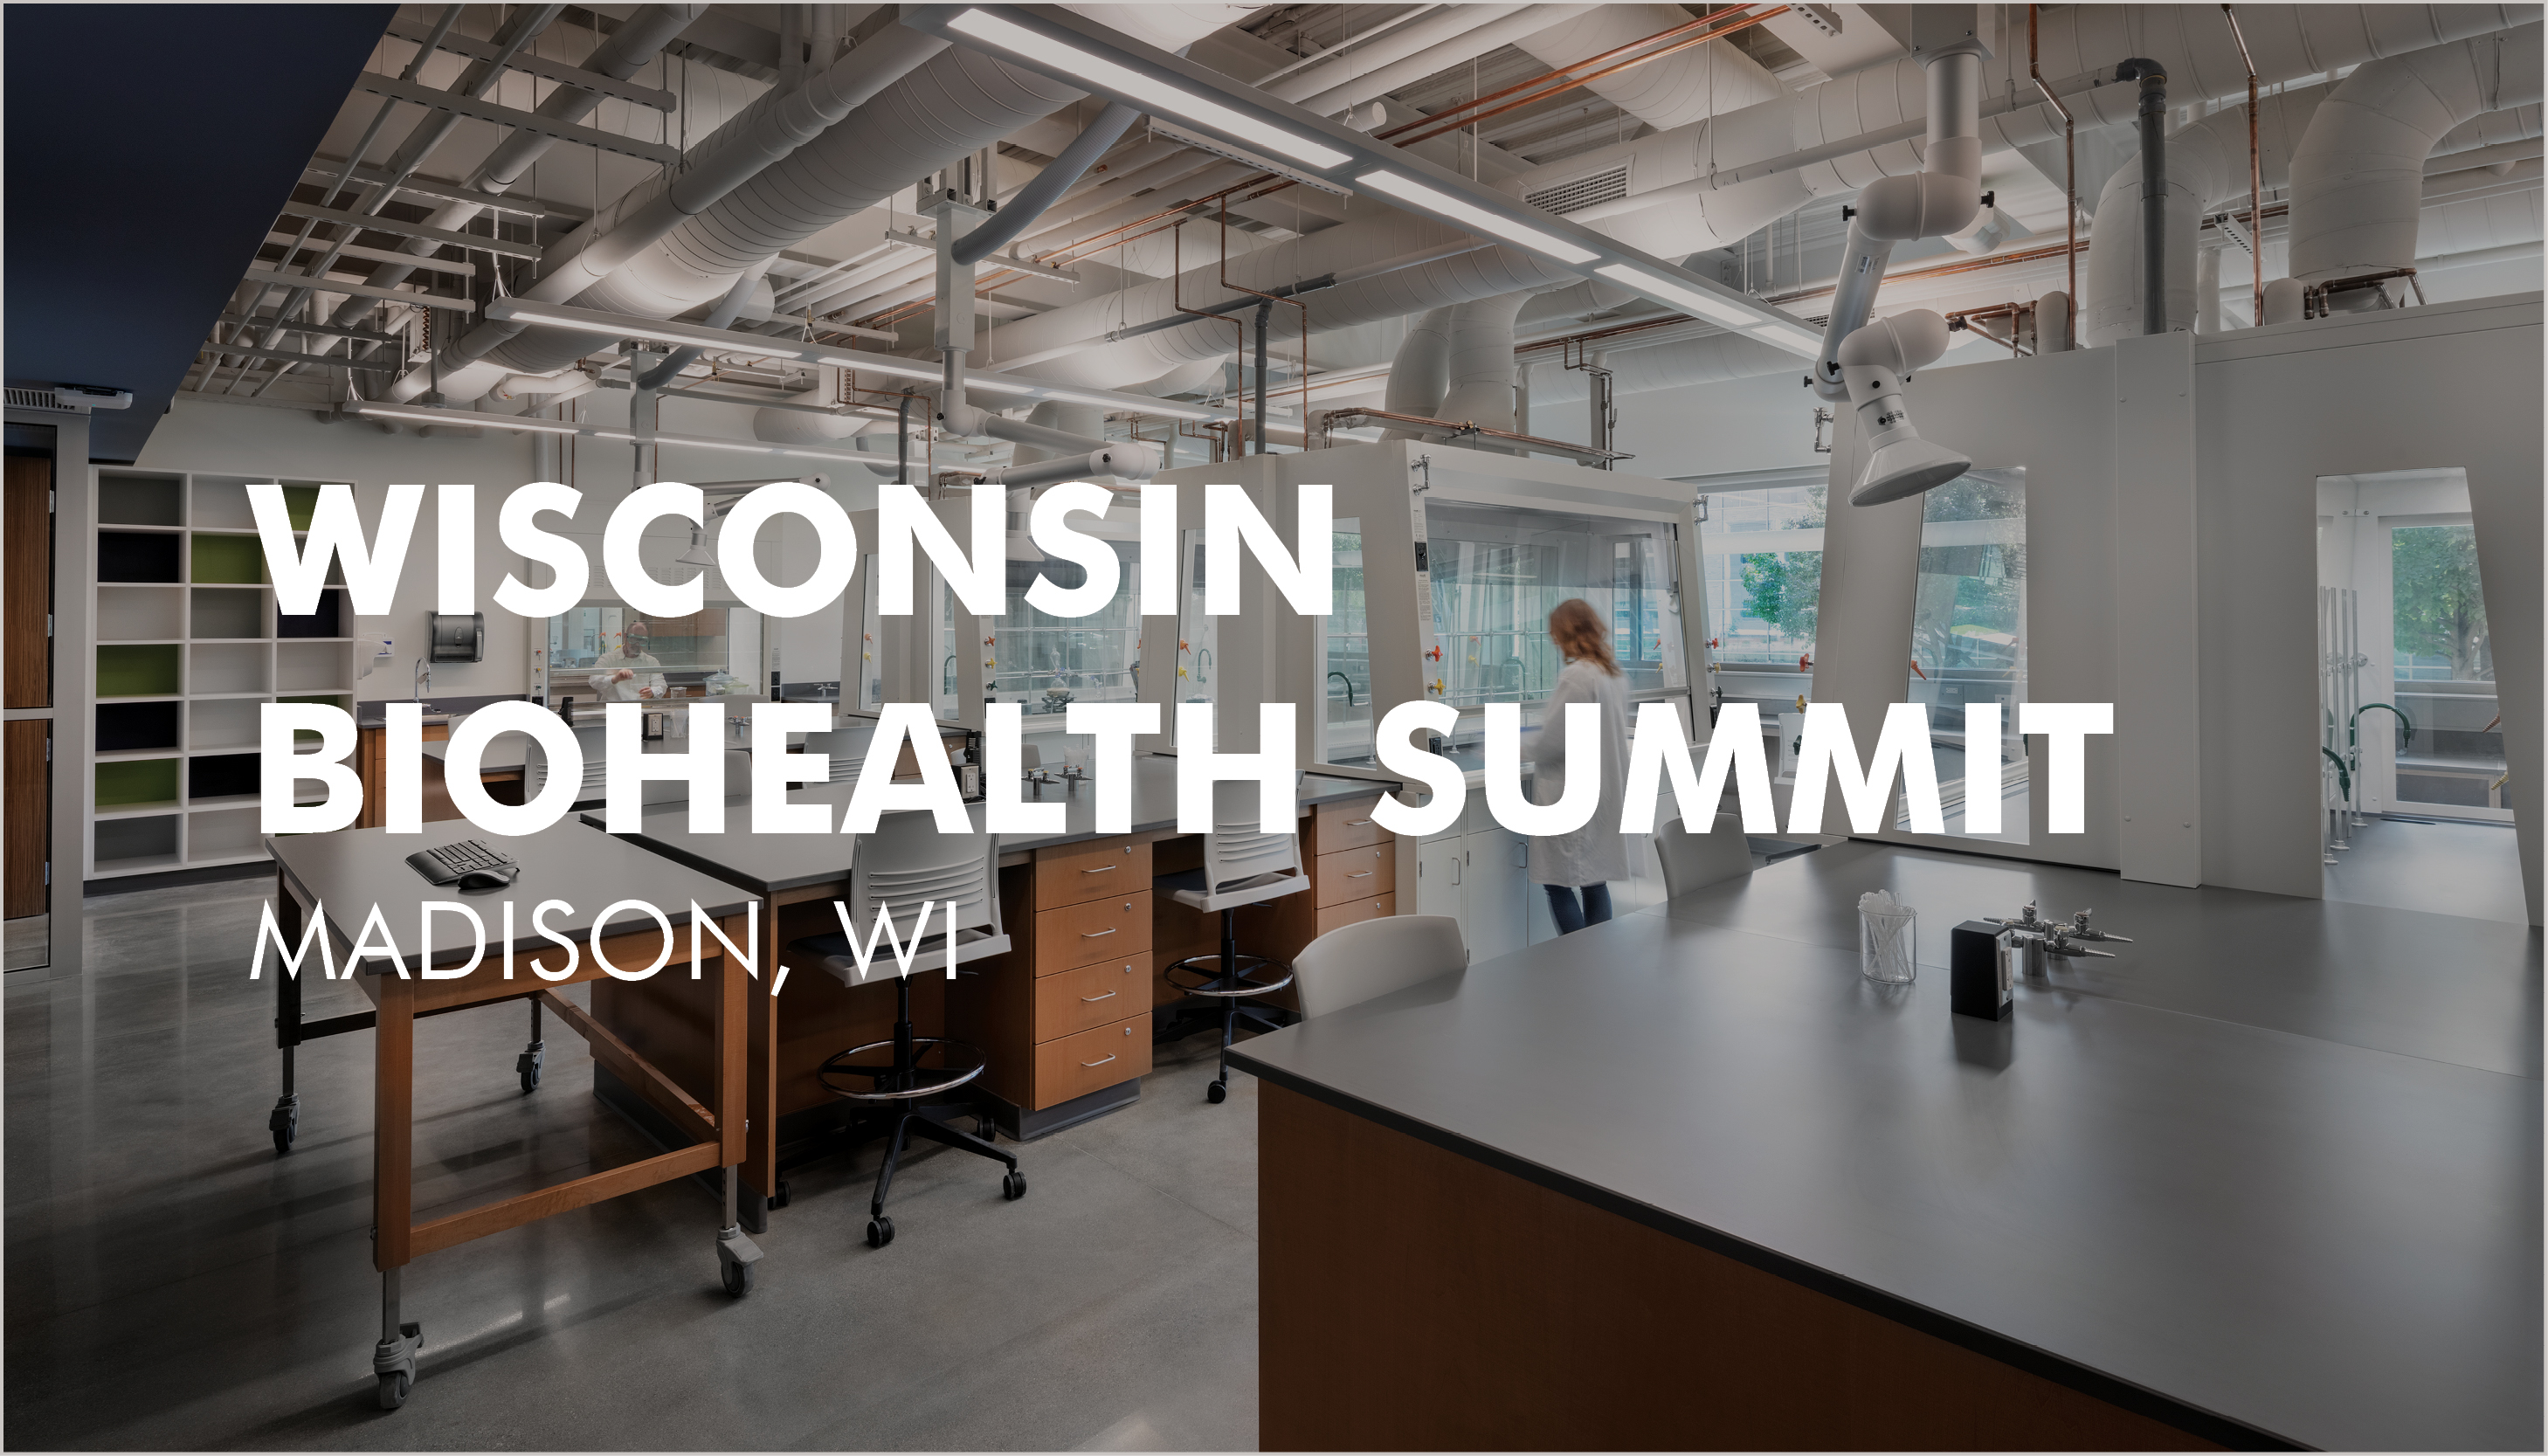 2019 Wisconsin Biohealth Summit Image